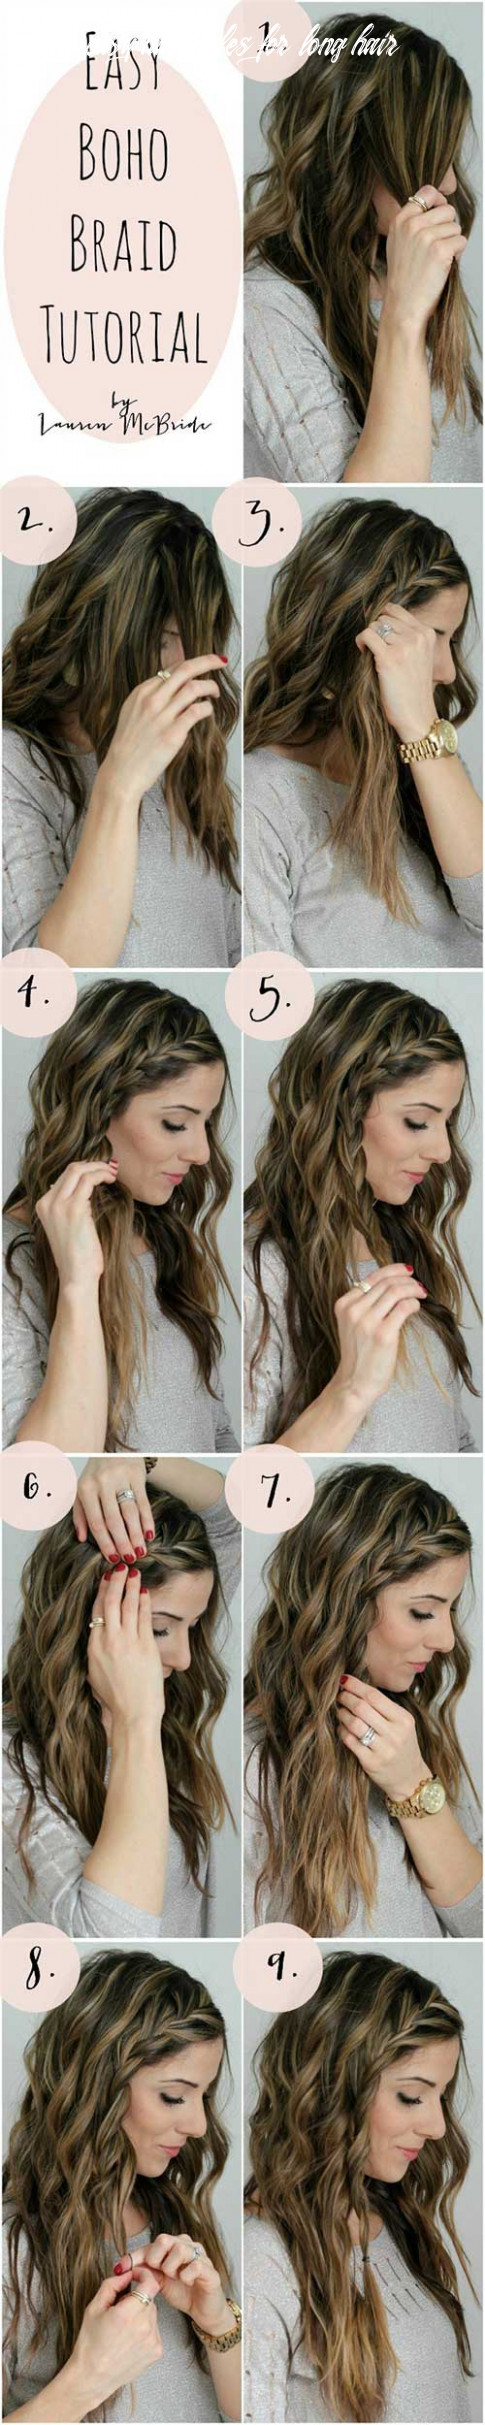 12 awesome hairstyles for girls with long hair quick easy hairstyles for long hair